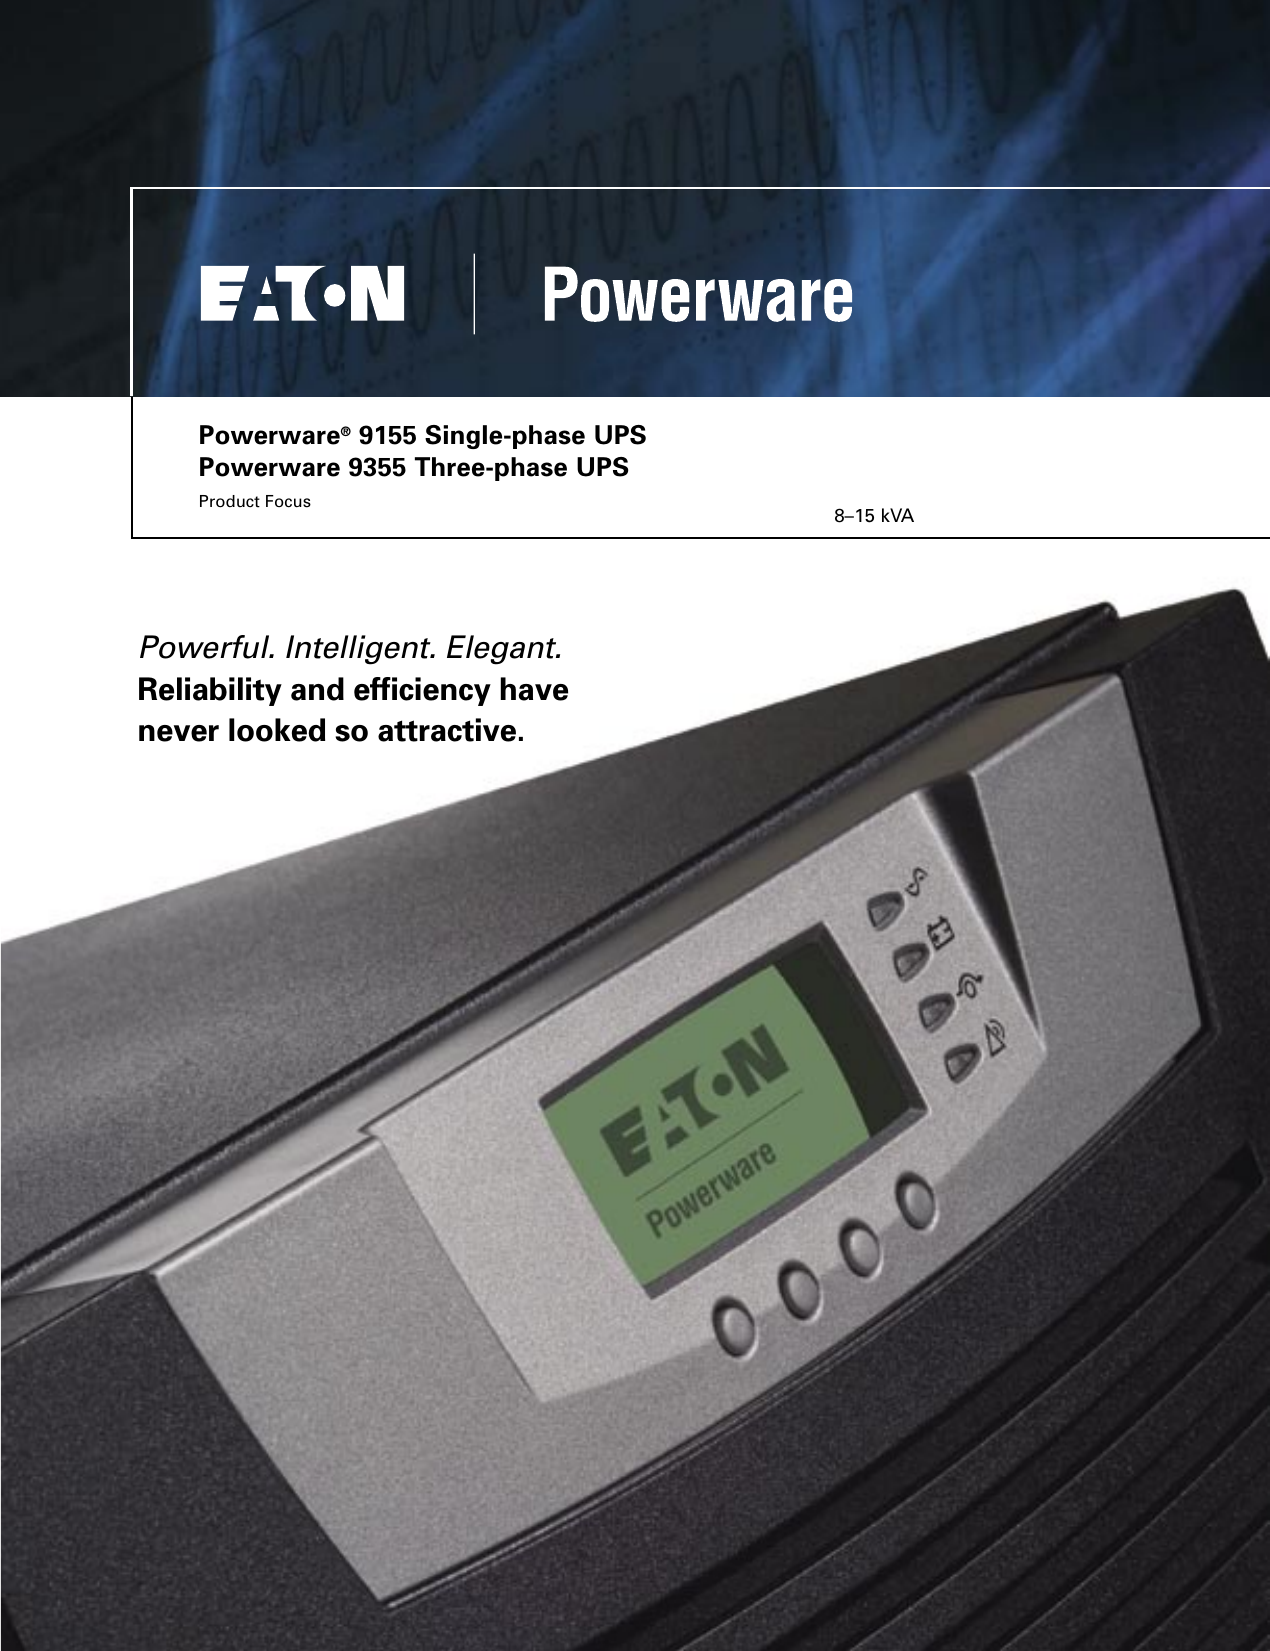 eaton powerware 9155 ups manual